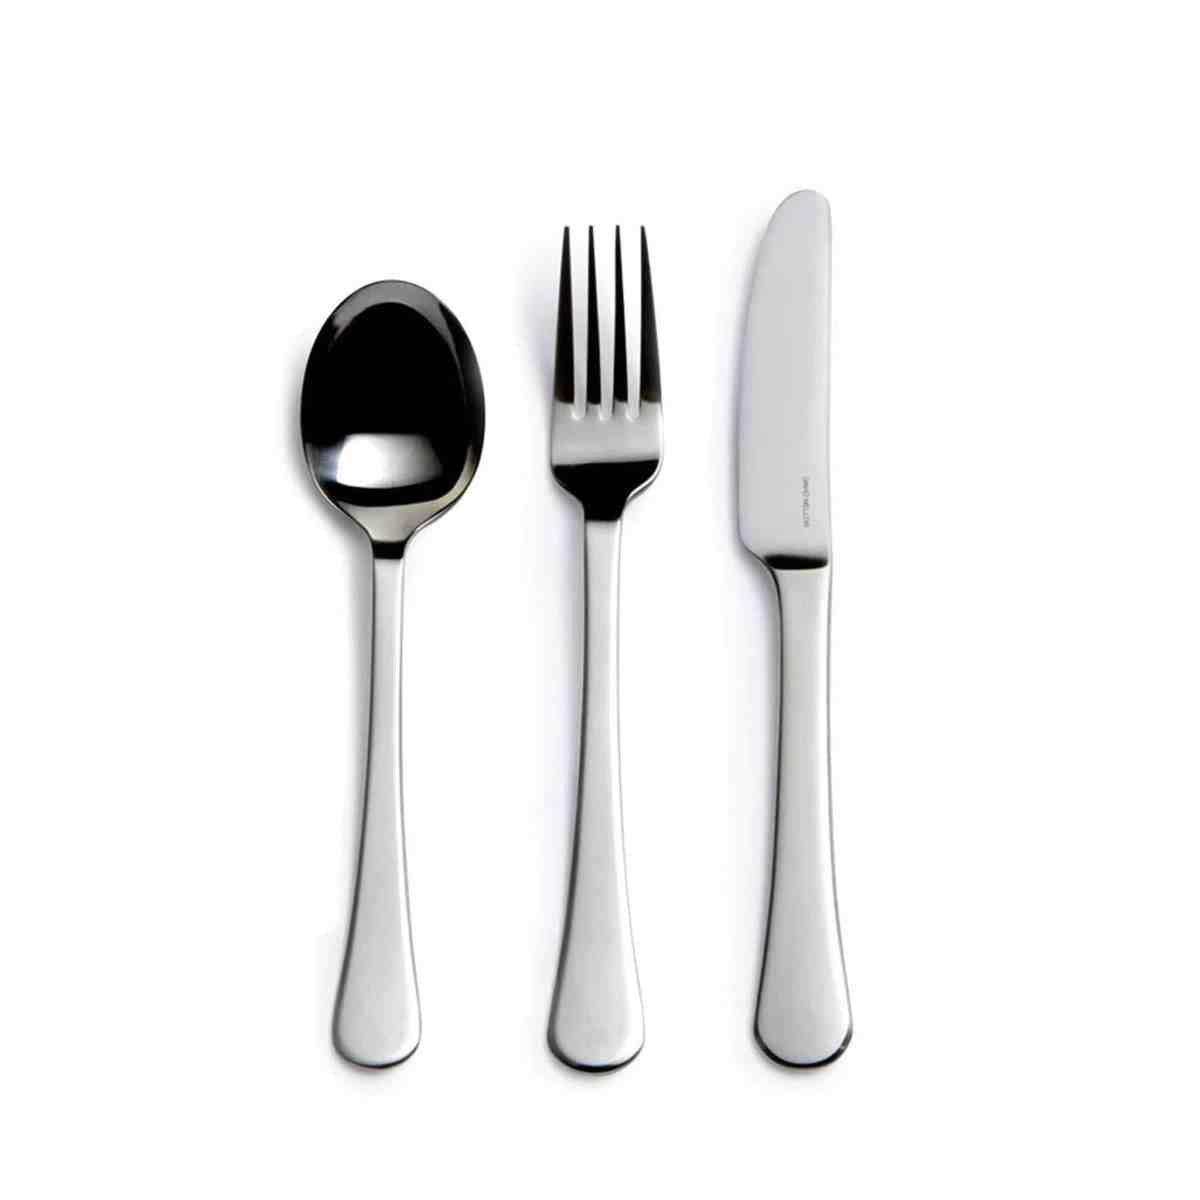 David-Mellor-Classic-Cutlery-Set-another-country-002